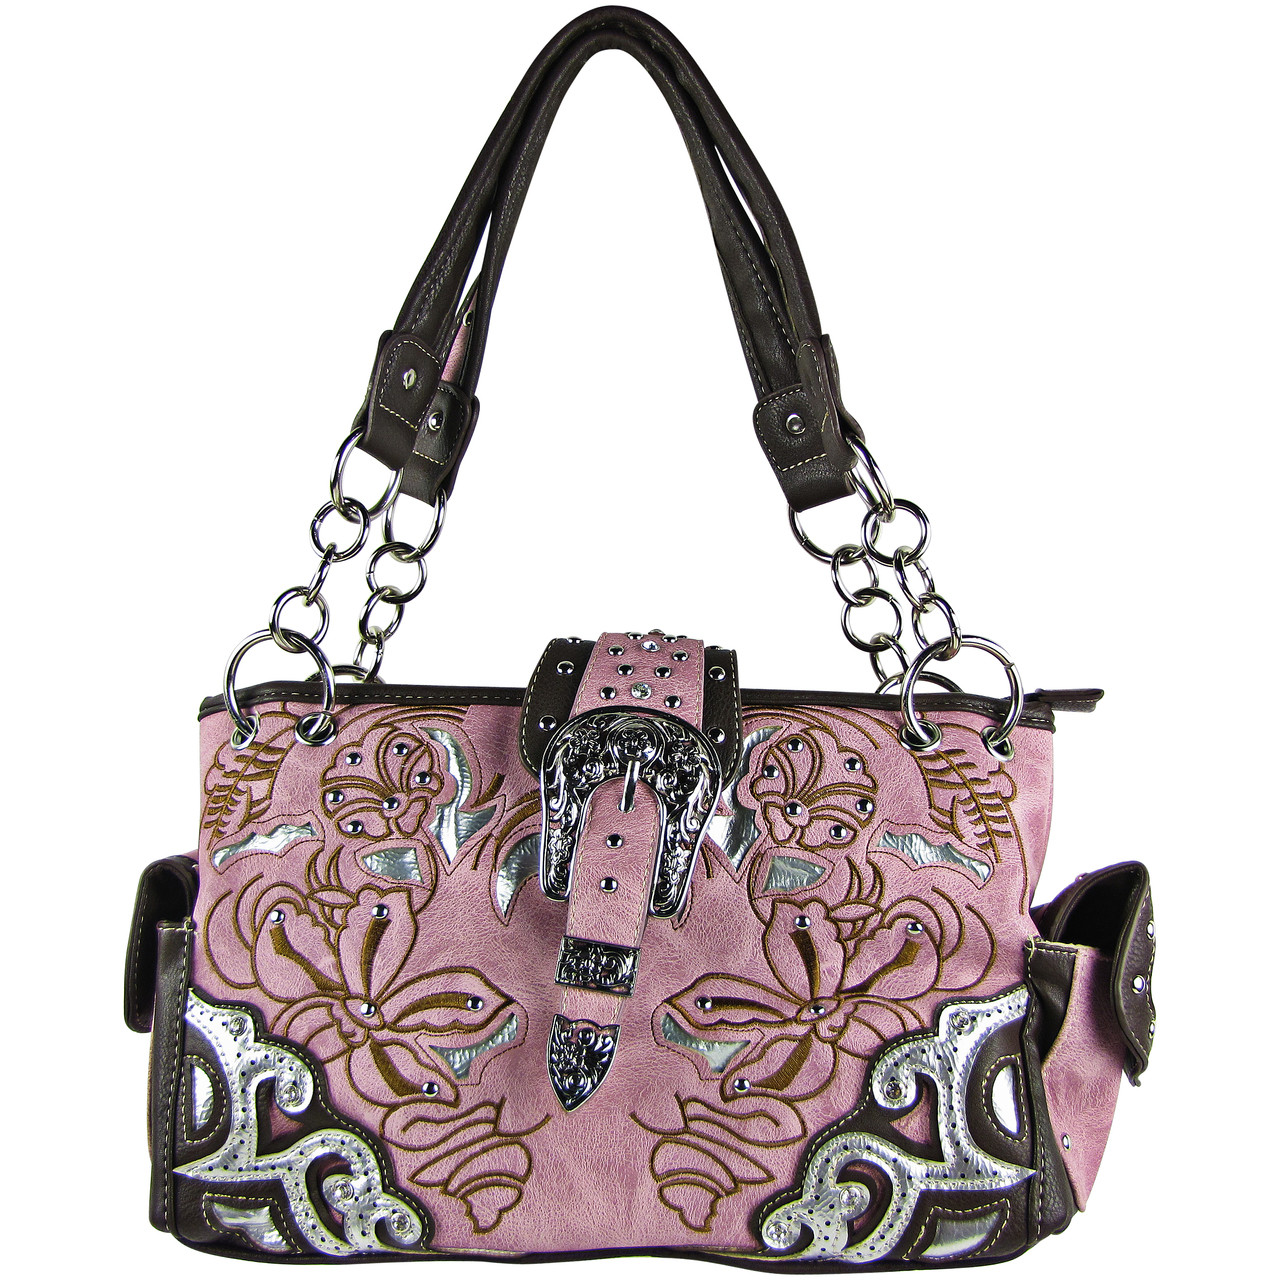 PINK FLOWER STITCHED STUDDED BUCKLE LOOK SHOULDER HANDBAG HB1-W10BKPNK